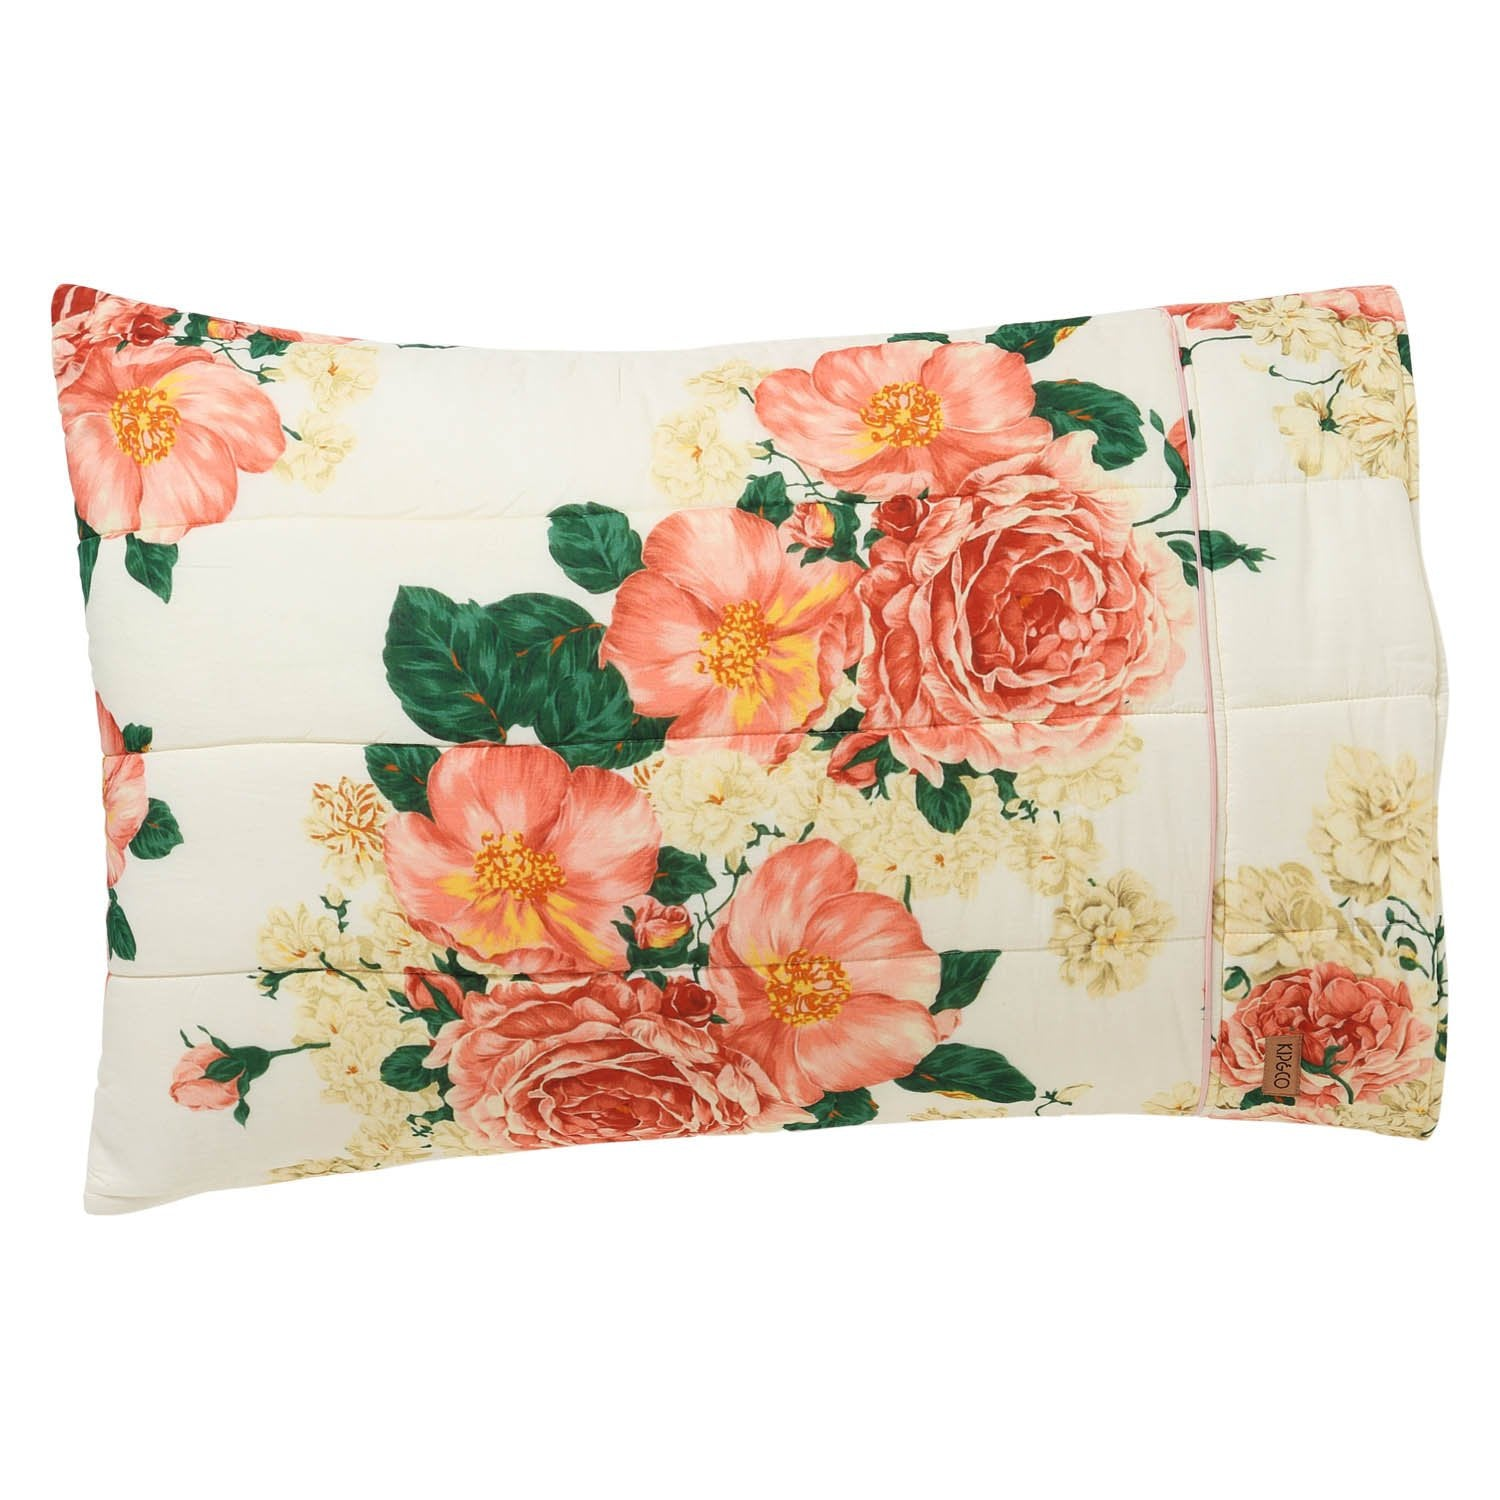 Kip & Co Bed of Roses Quilted Pillowcase Set - The Artisan Storeroom